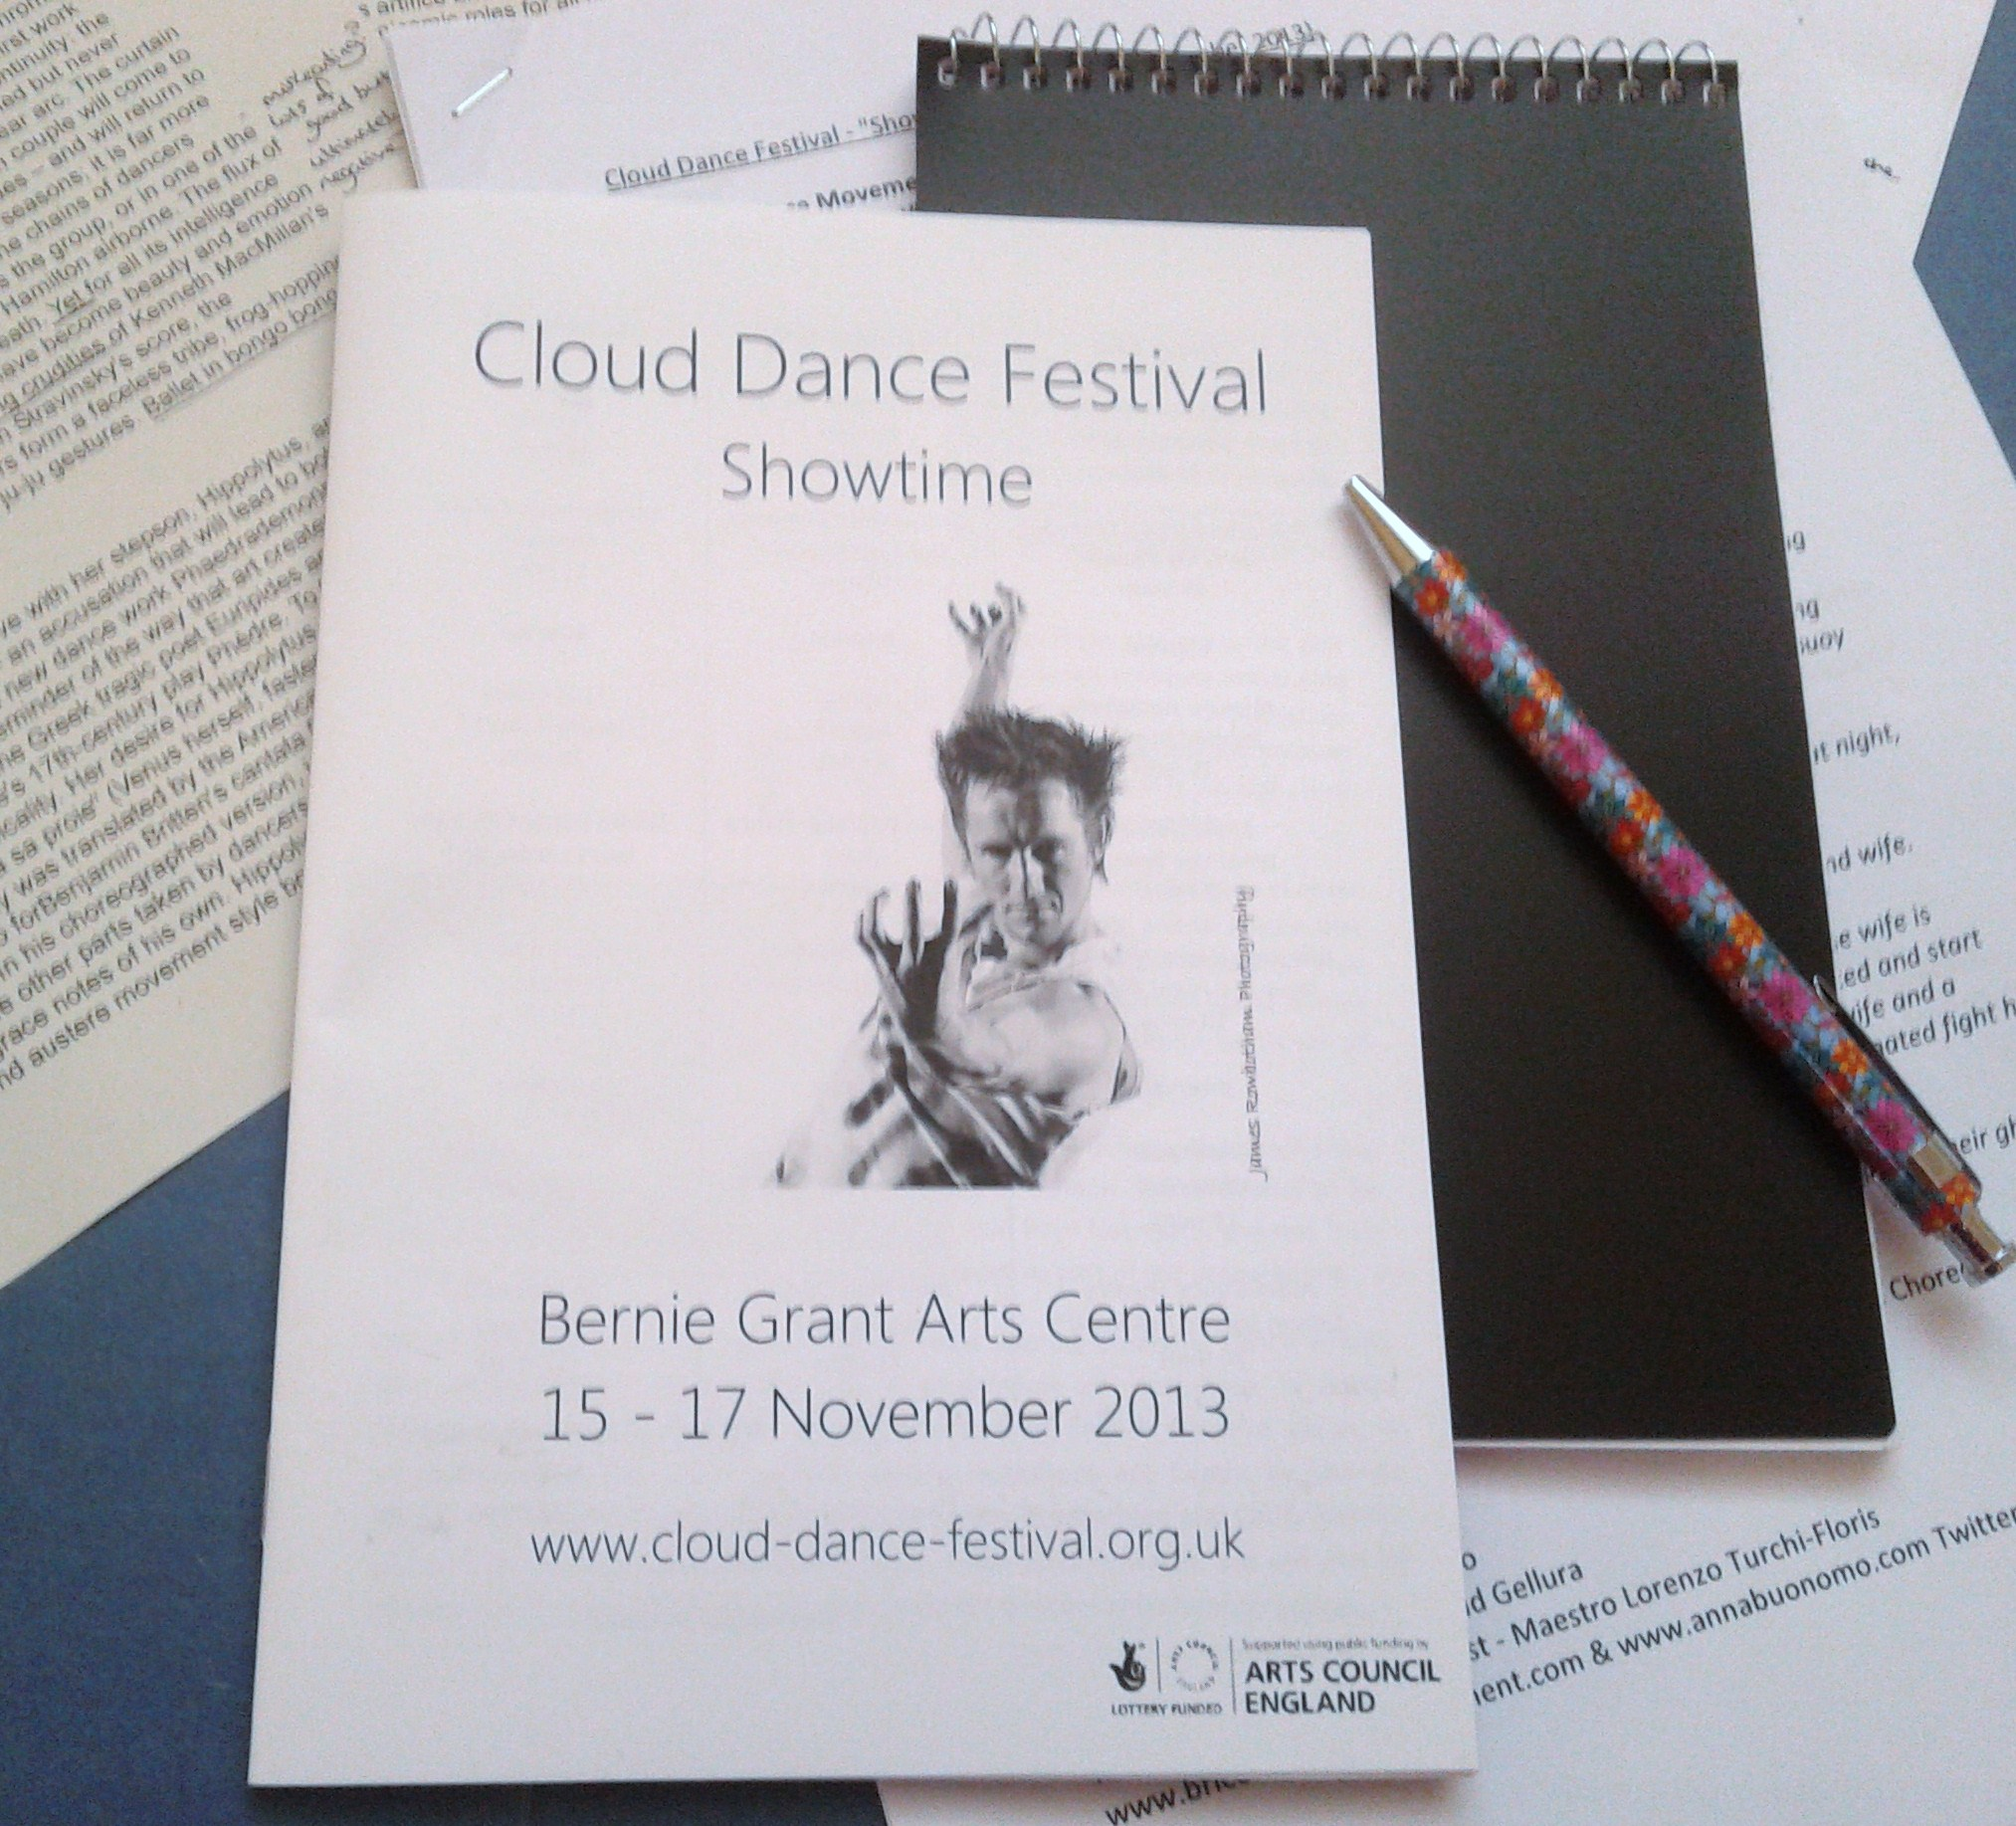 Cloud Dance Festival papers